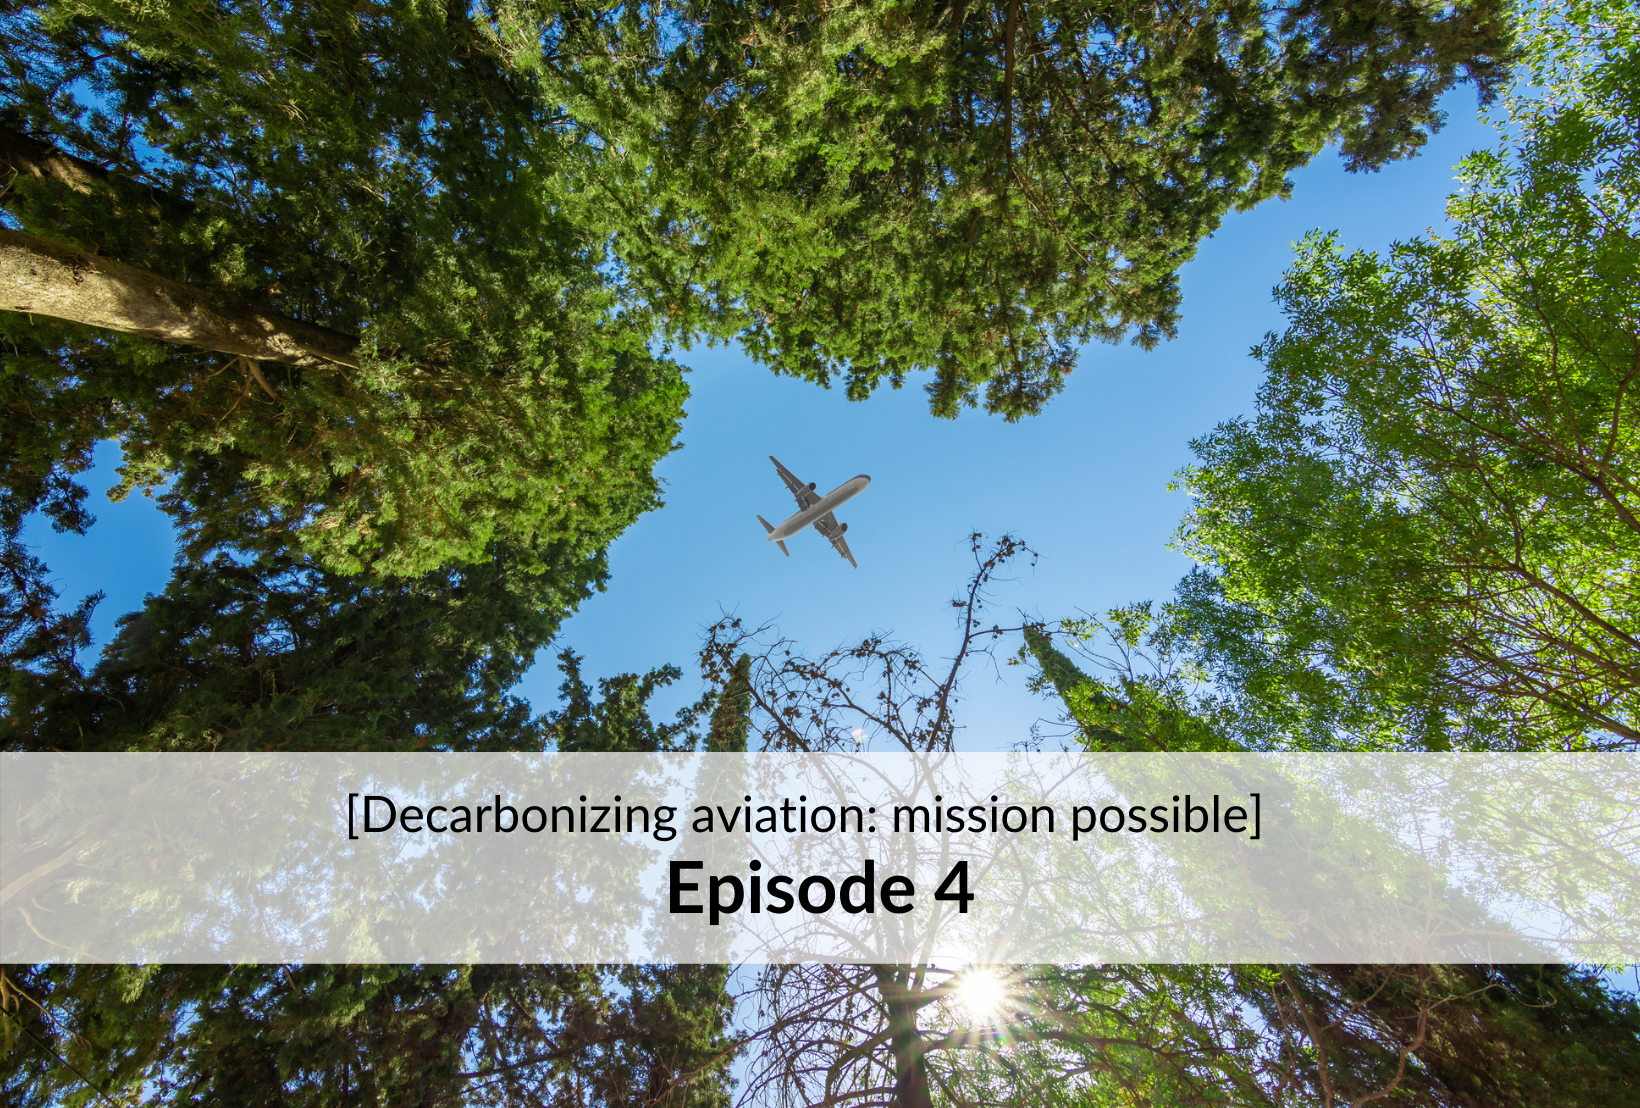 decarbonizing aviation episode 4